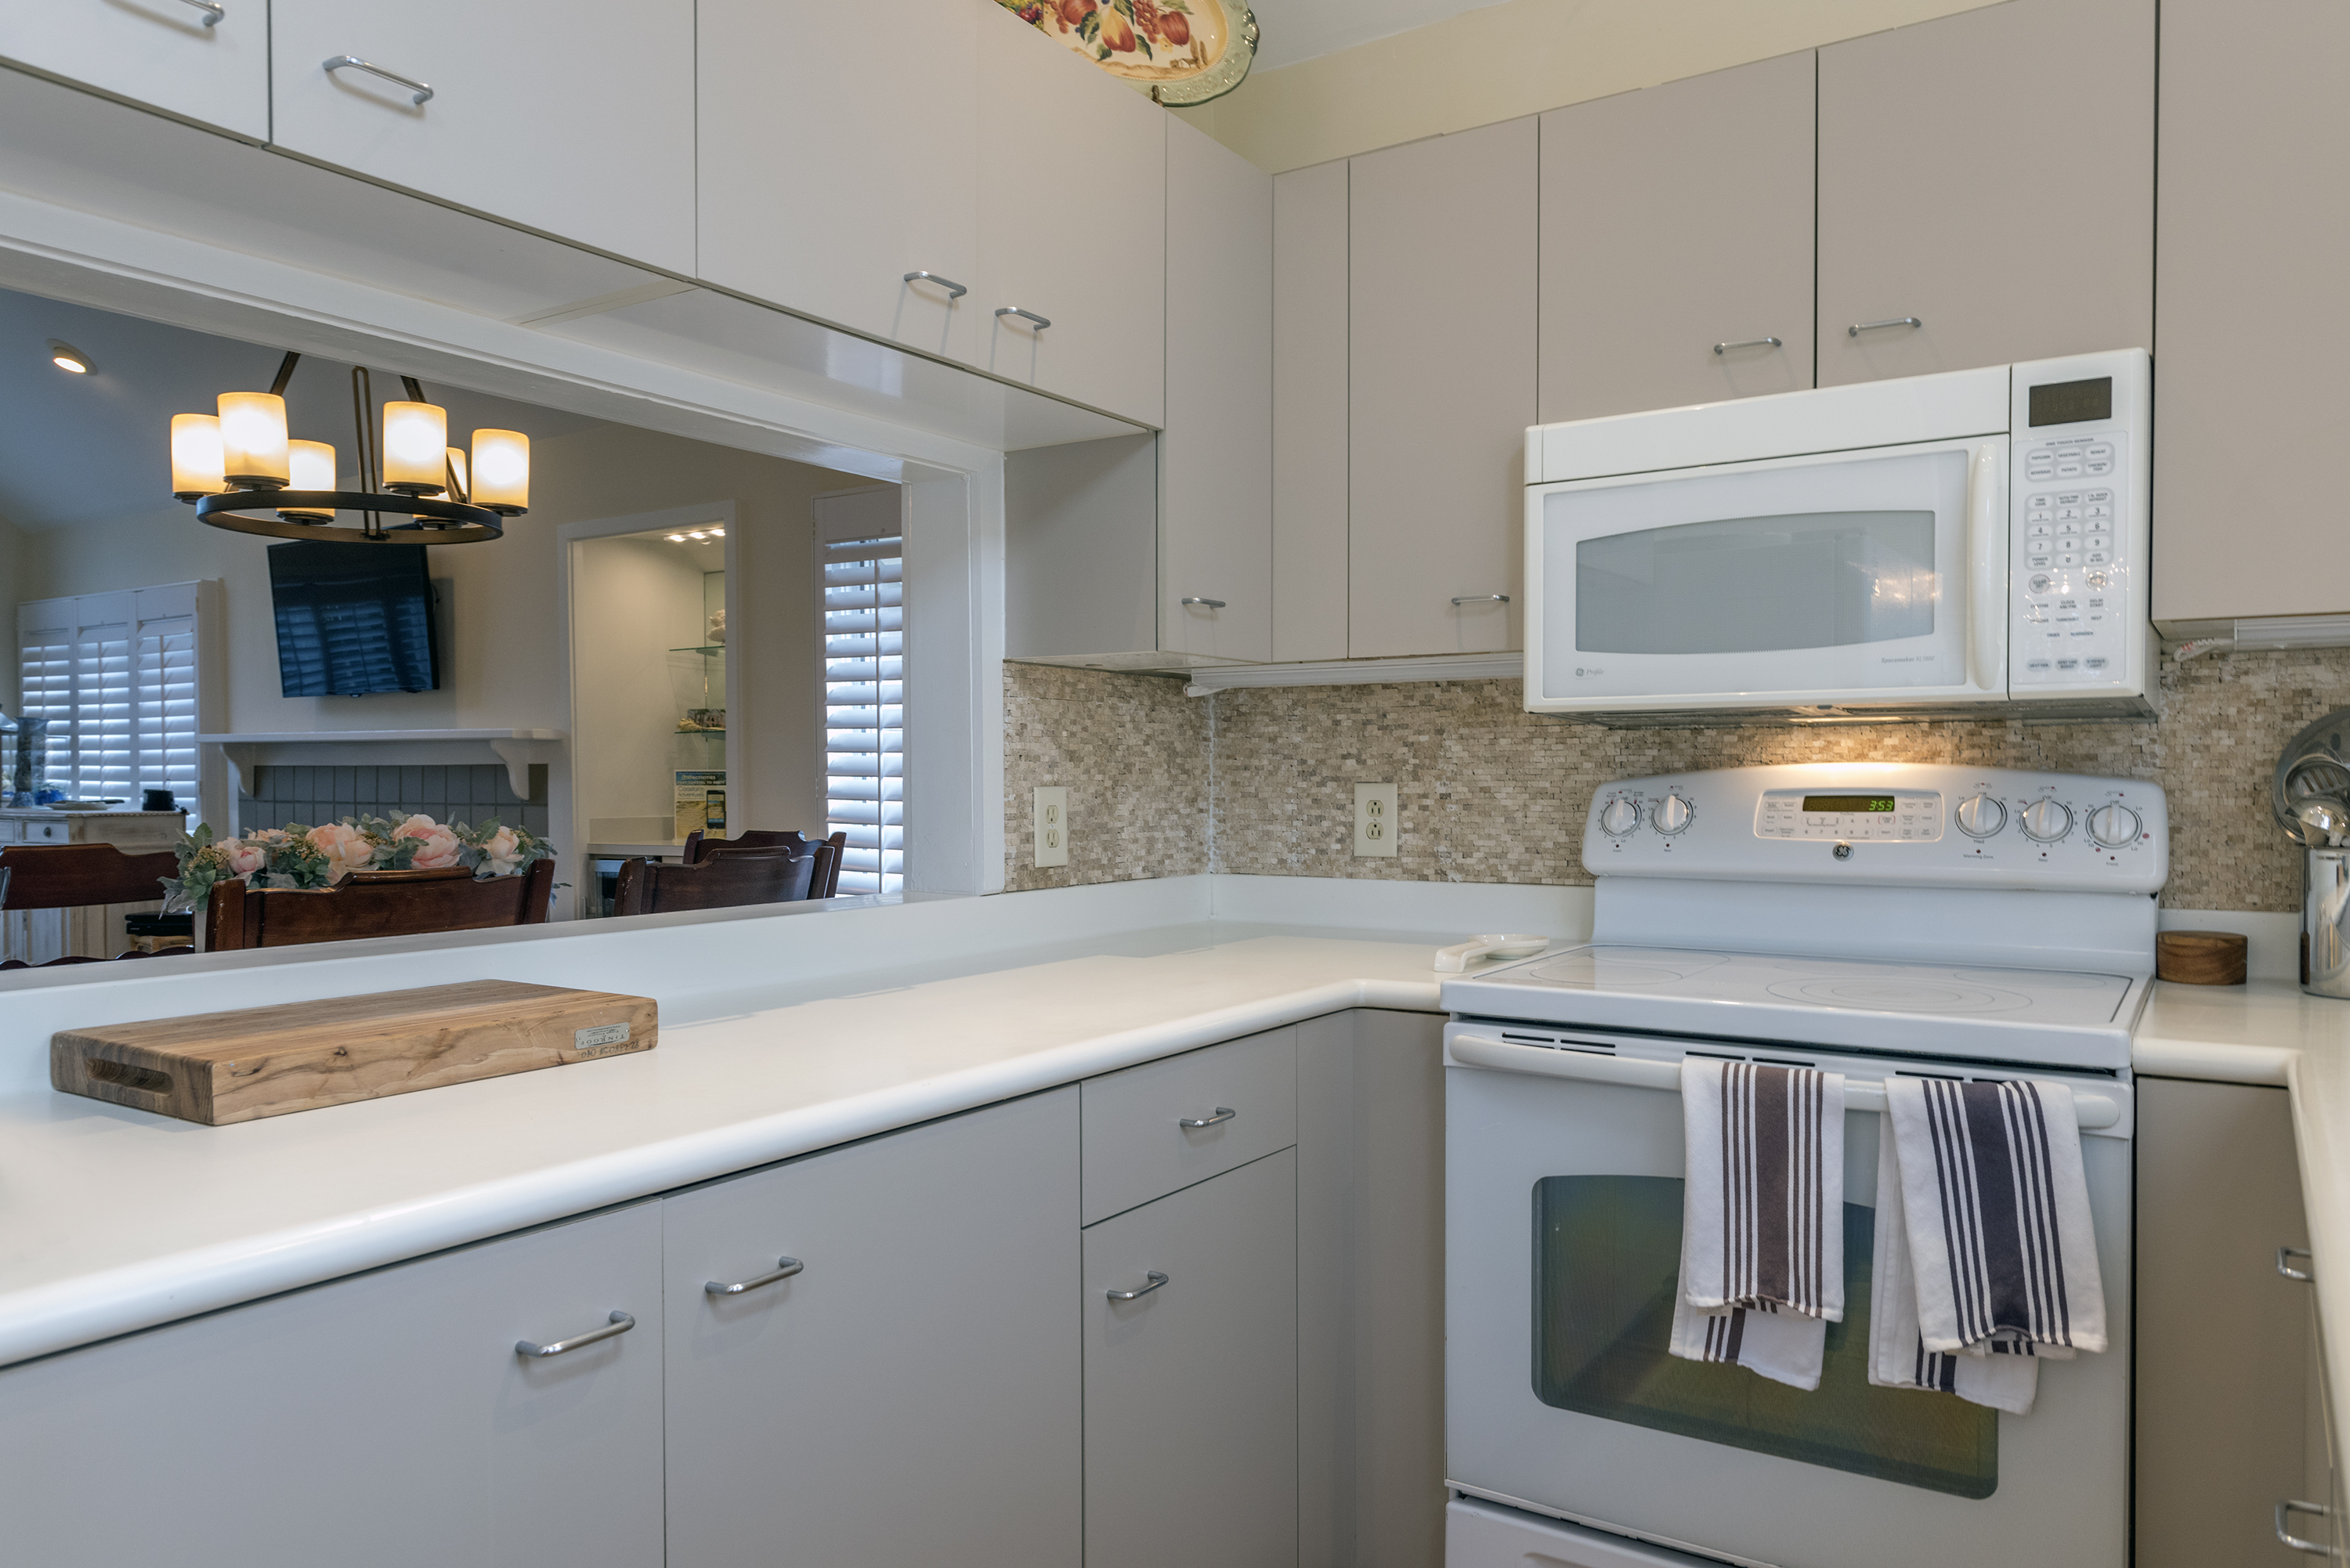 The kitchen has plenty of cupboards and counter space.